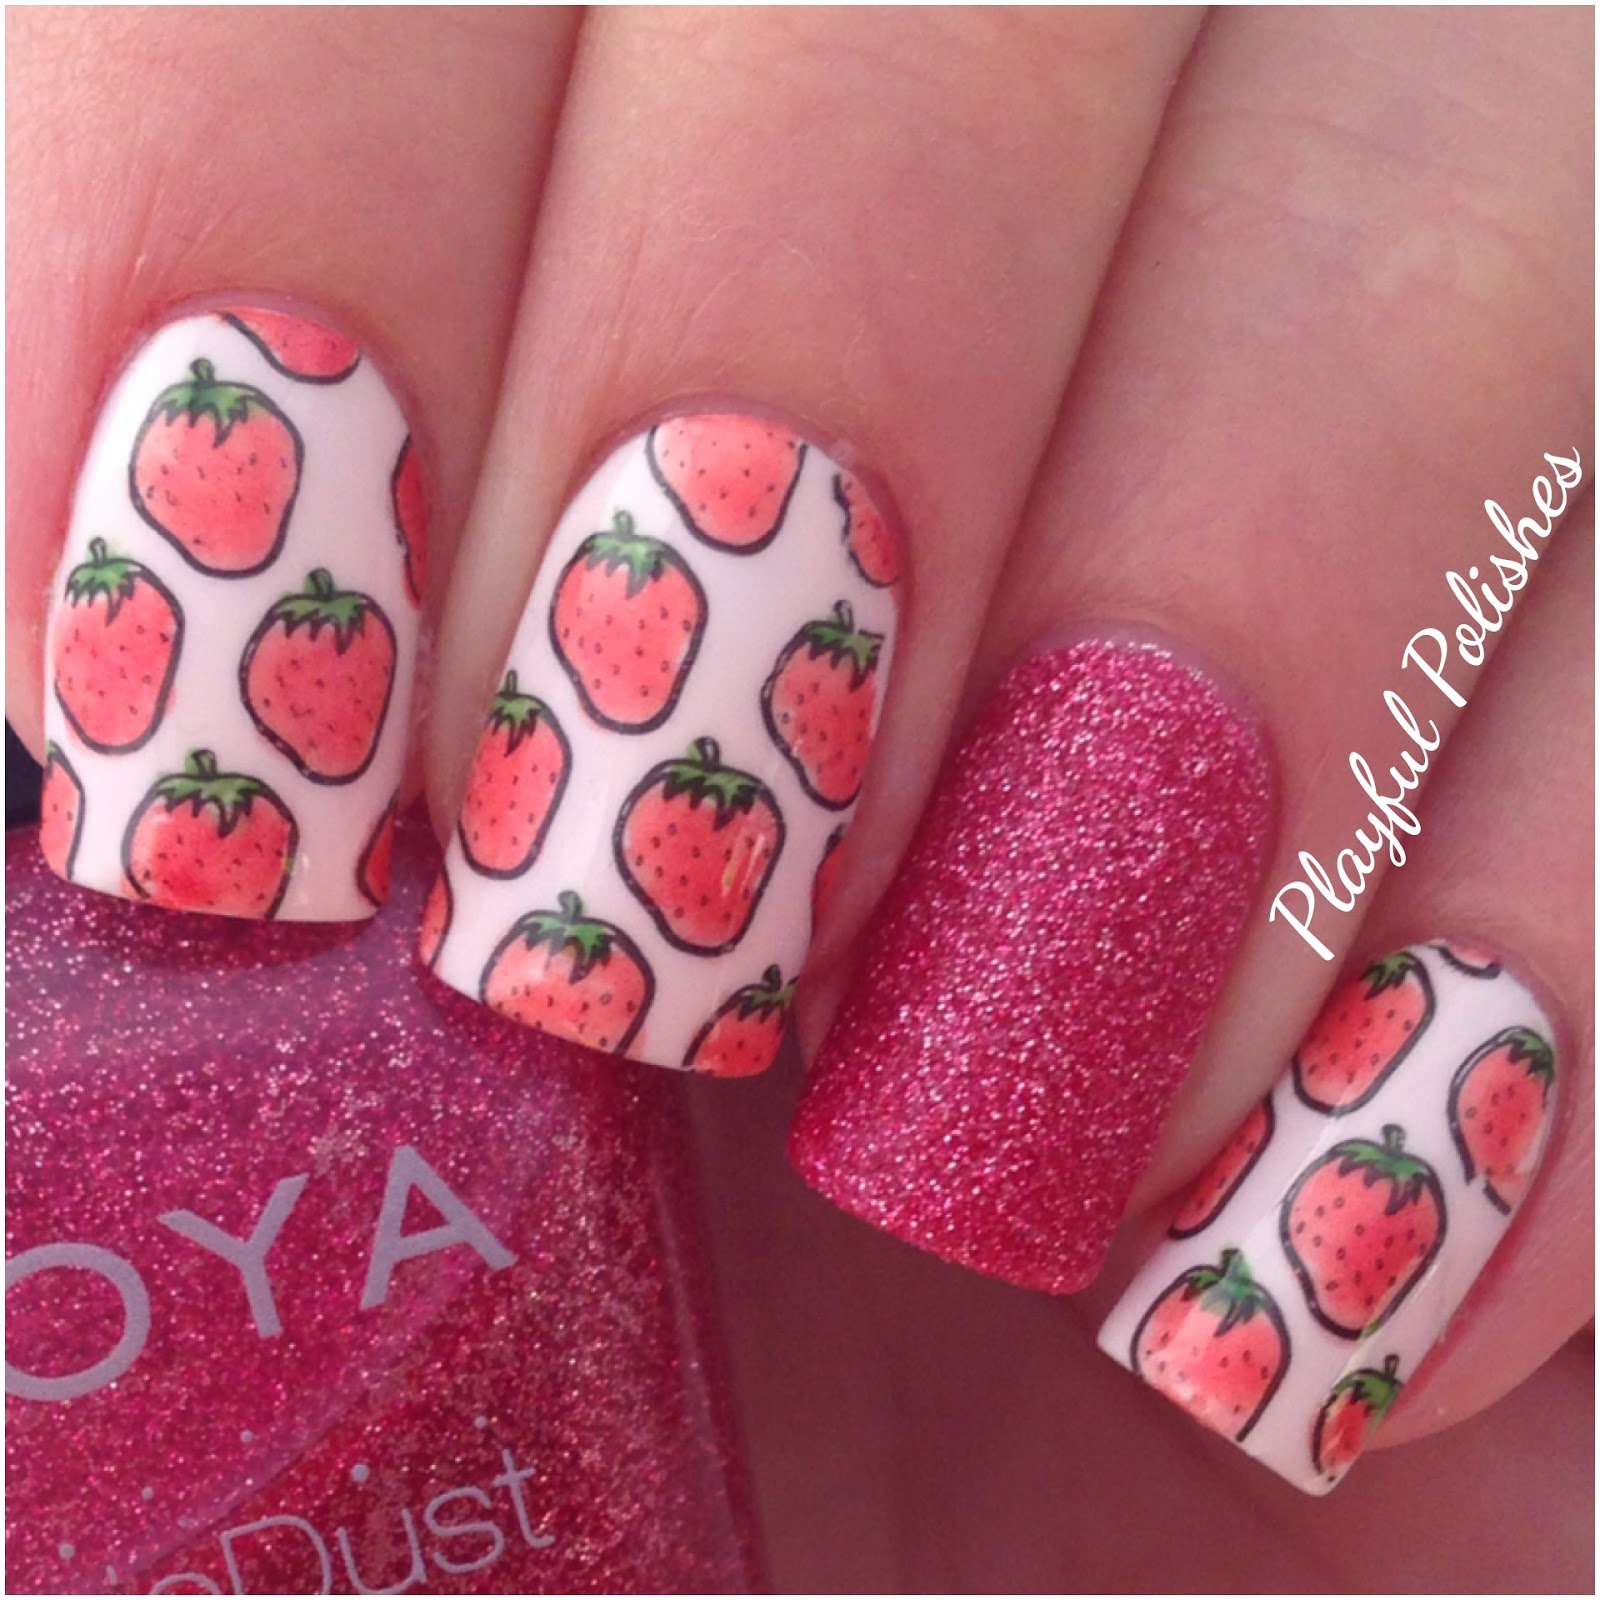 Playful Polishes: ADVANCED STAMPING/STRAWBERRY NAIL ART